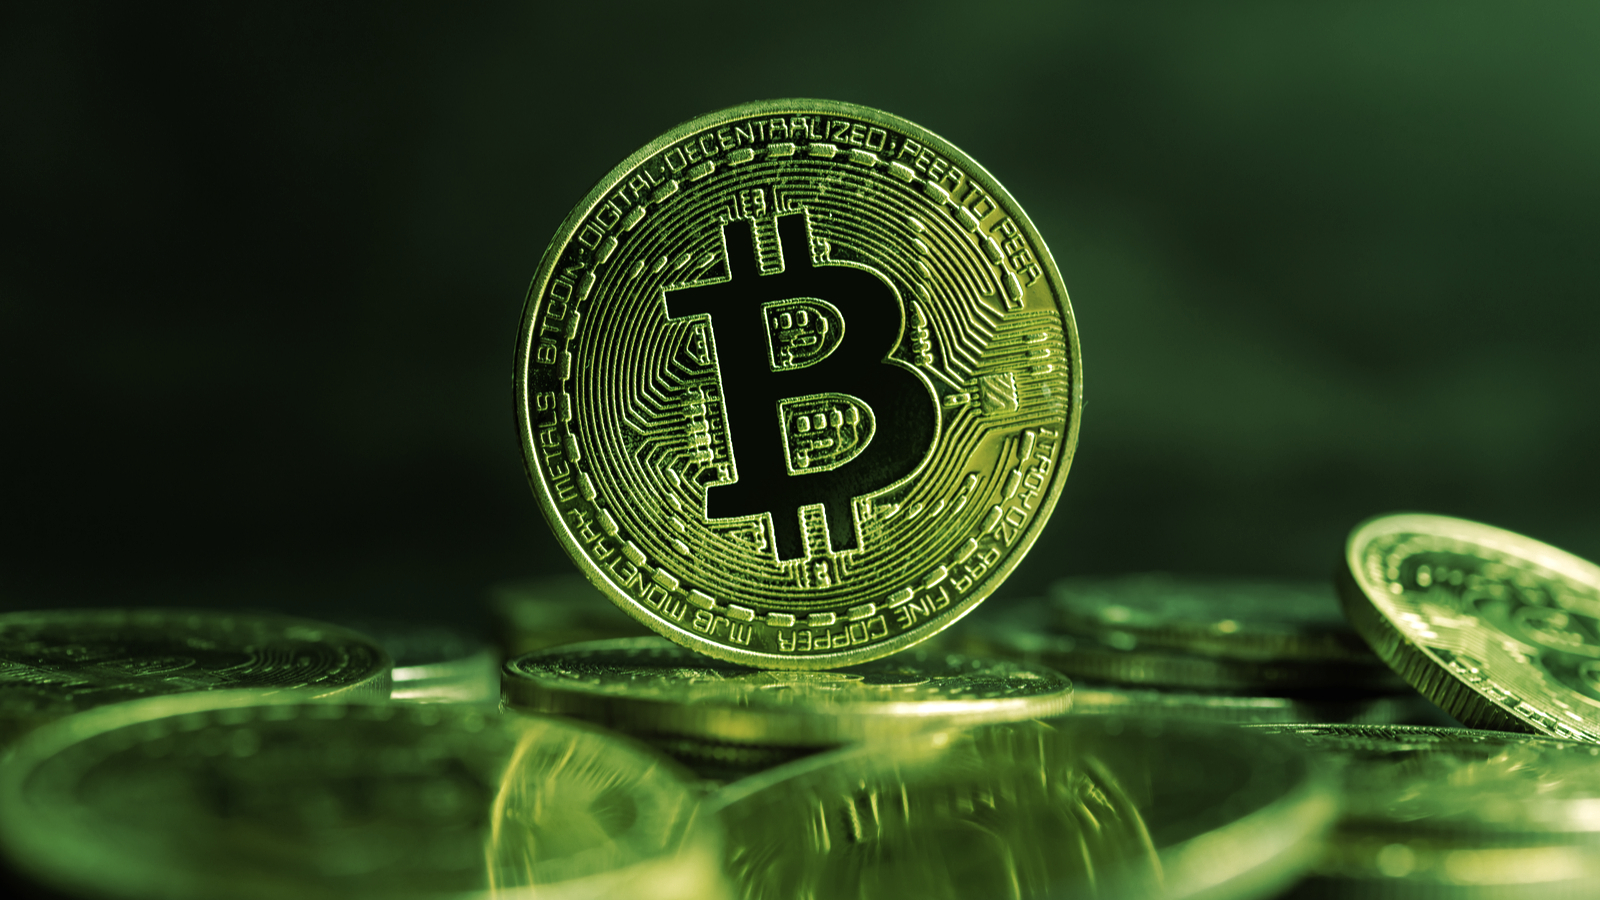 Bitcoin Falls Below $30,000 For First Time Since January